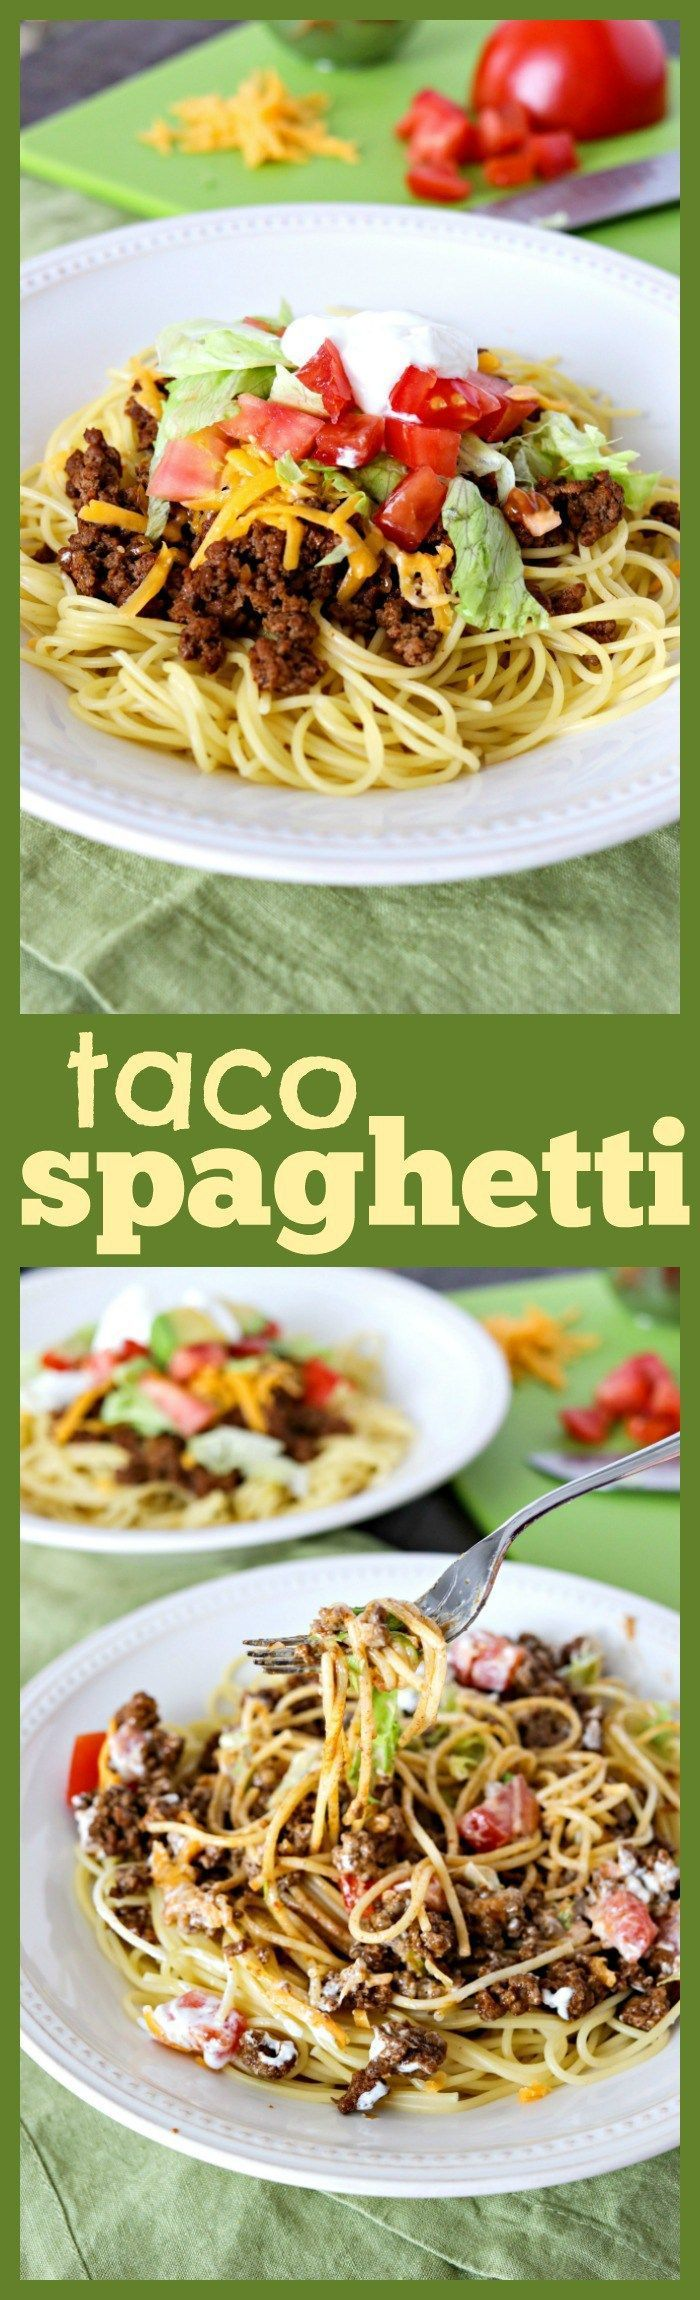 Taco Spaghetti - A fun, new way to enjoy Taco Tuesday! Taco spaghetti is an easy weeknight meal that is perfect for the whole family! (Baking Pasta Spaghetti)